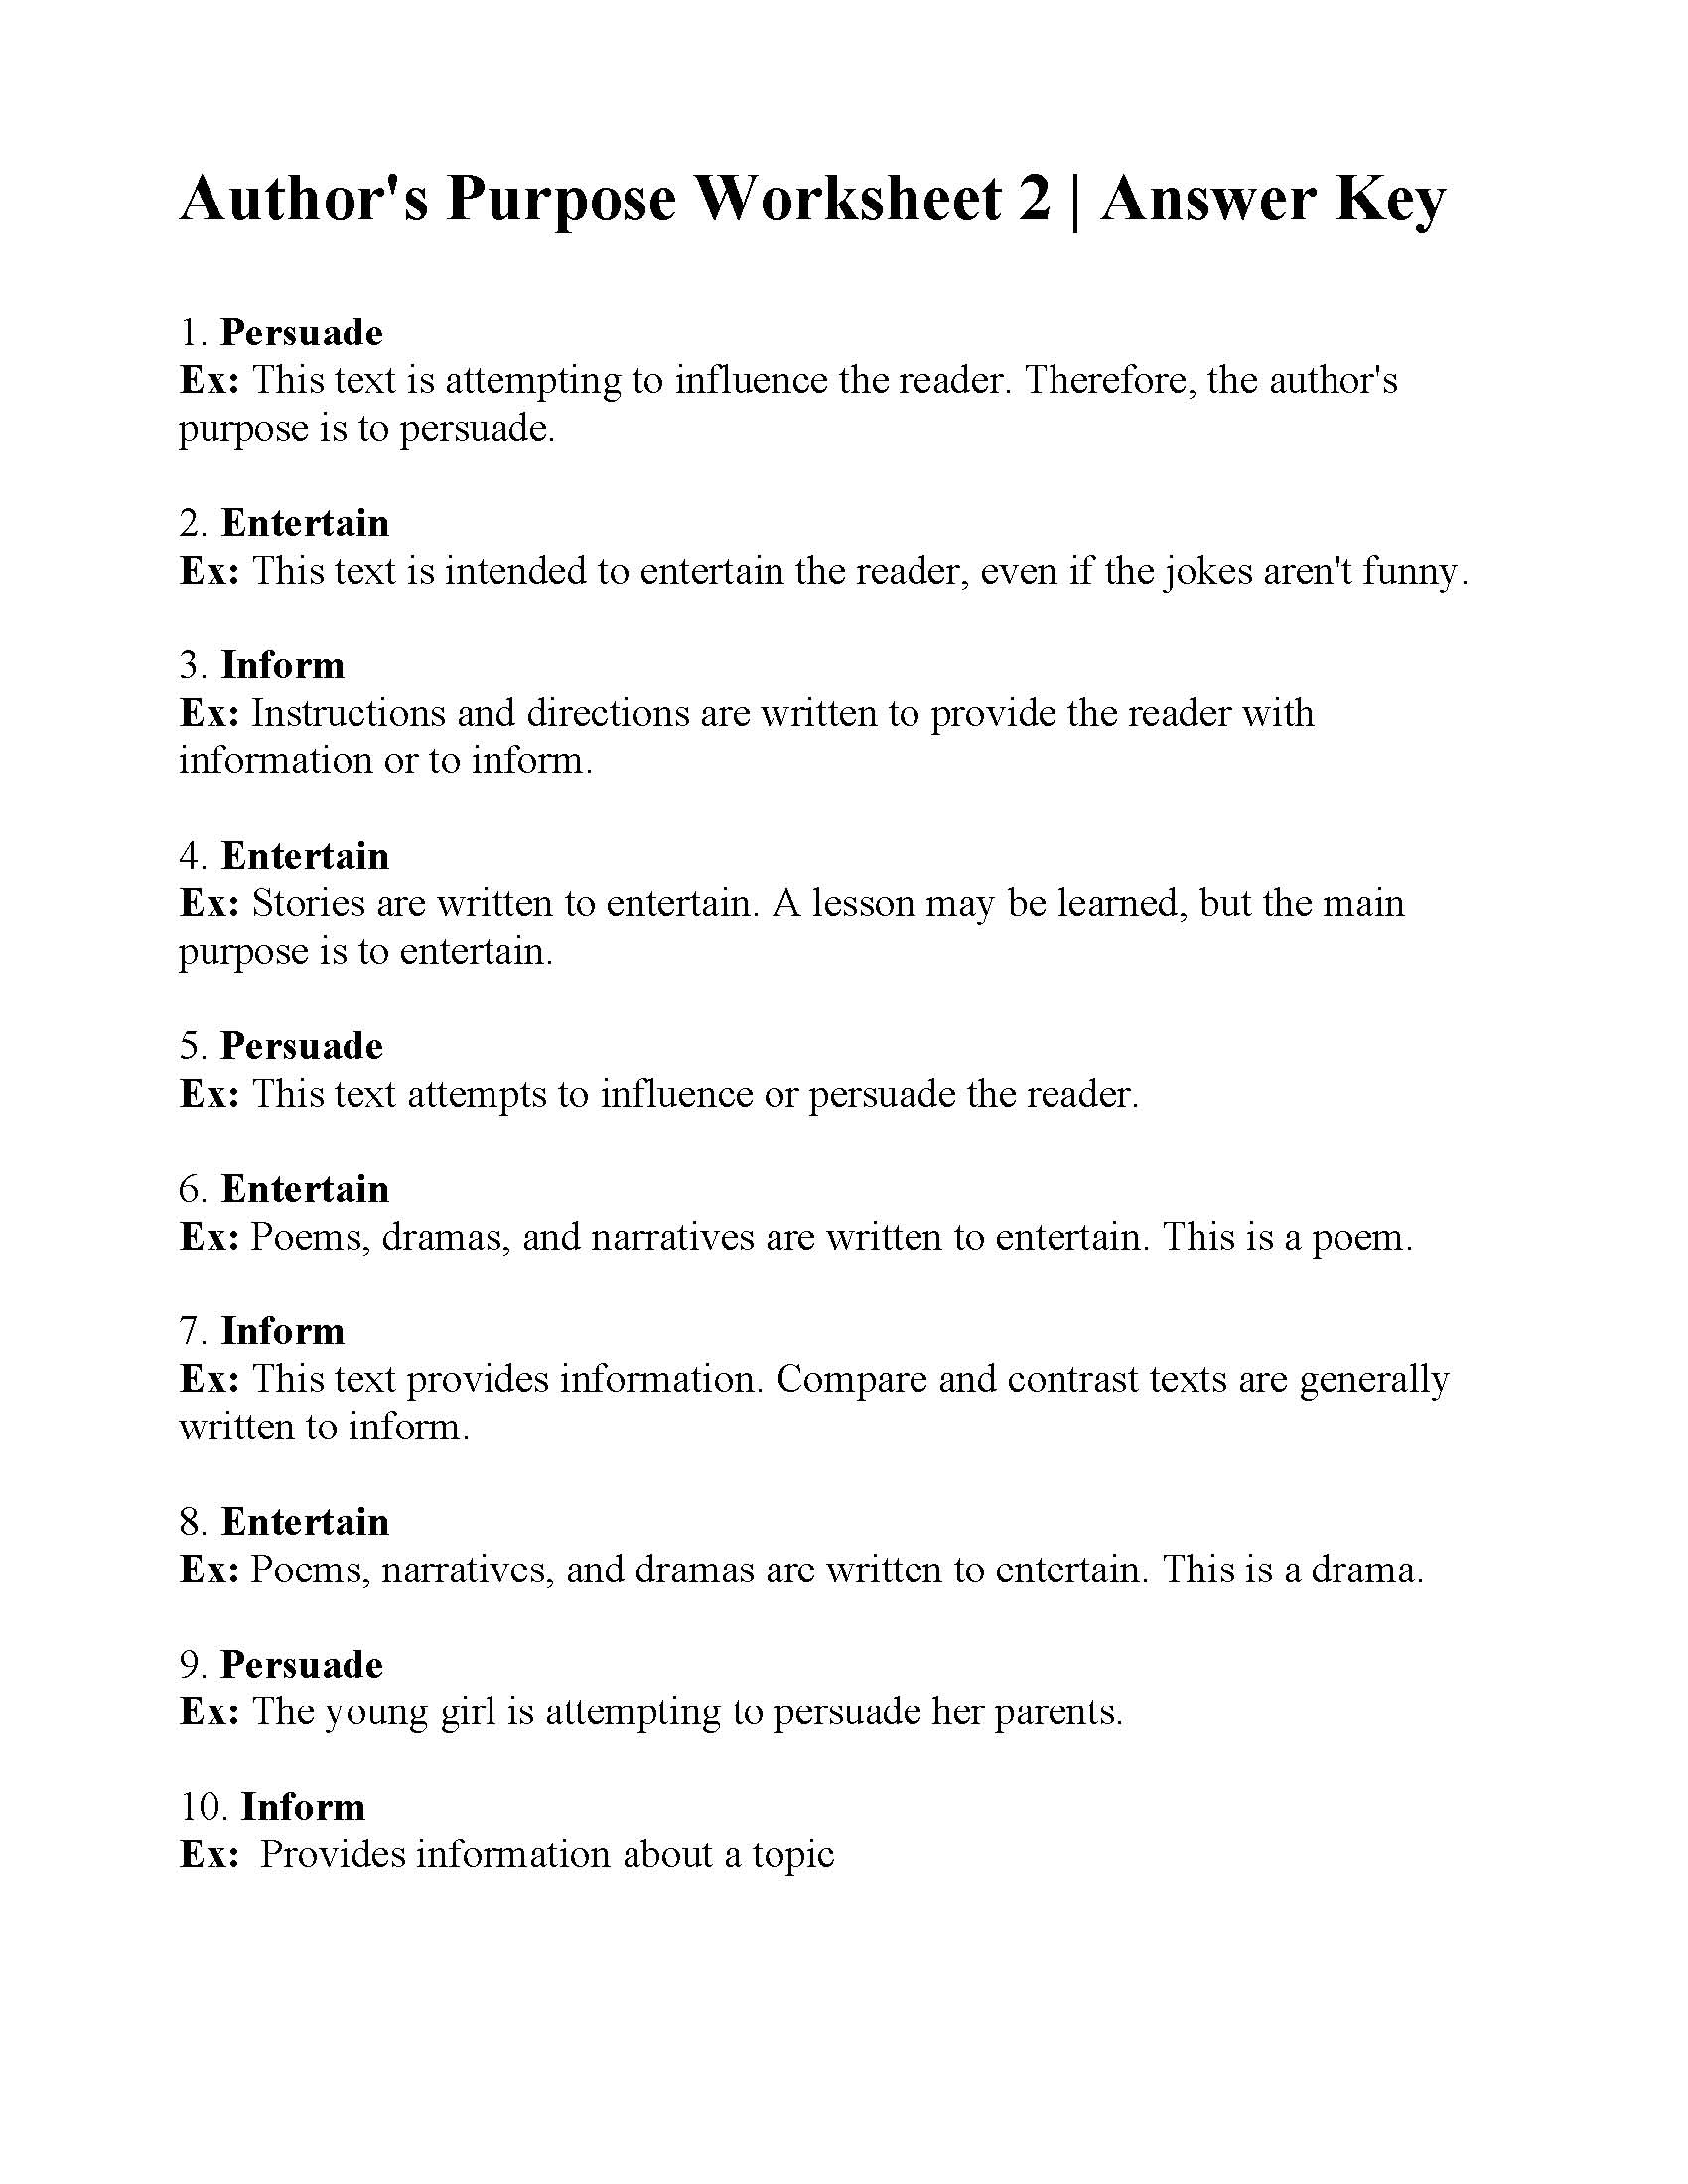 Author's Purpose Worksheet 2 | Answers